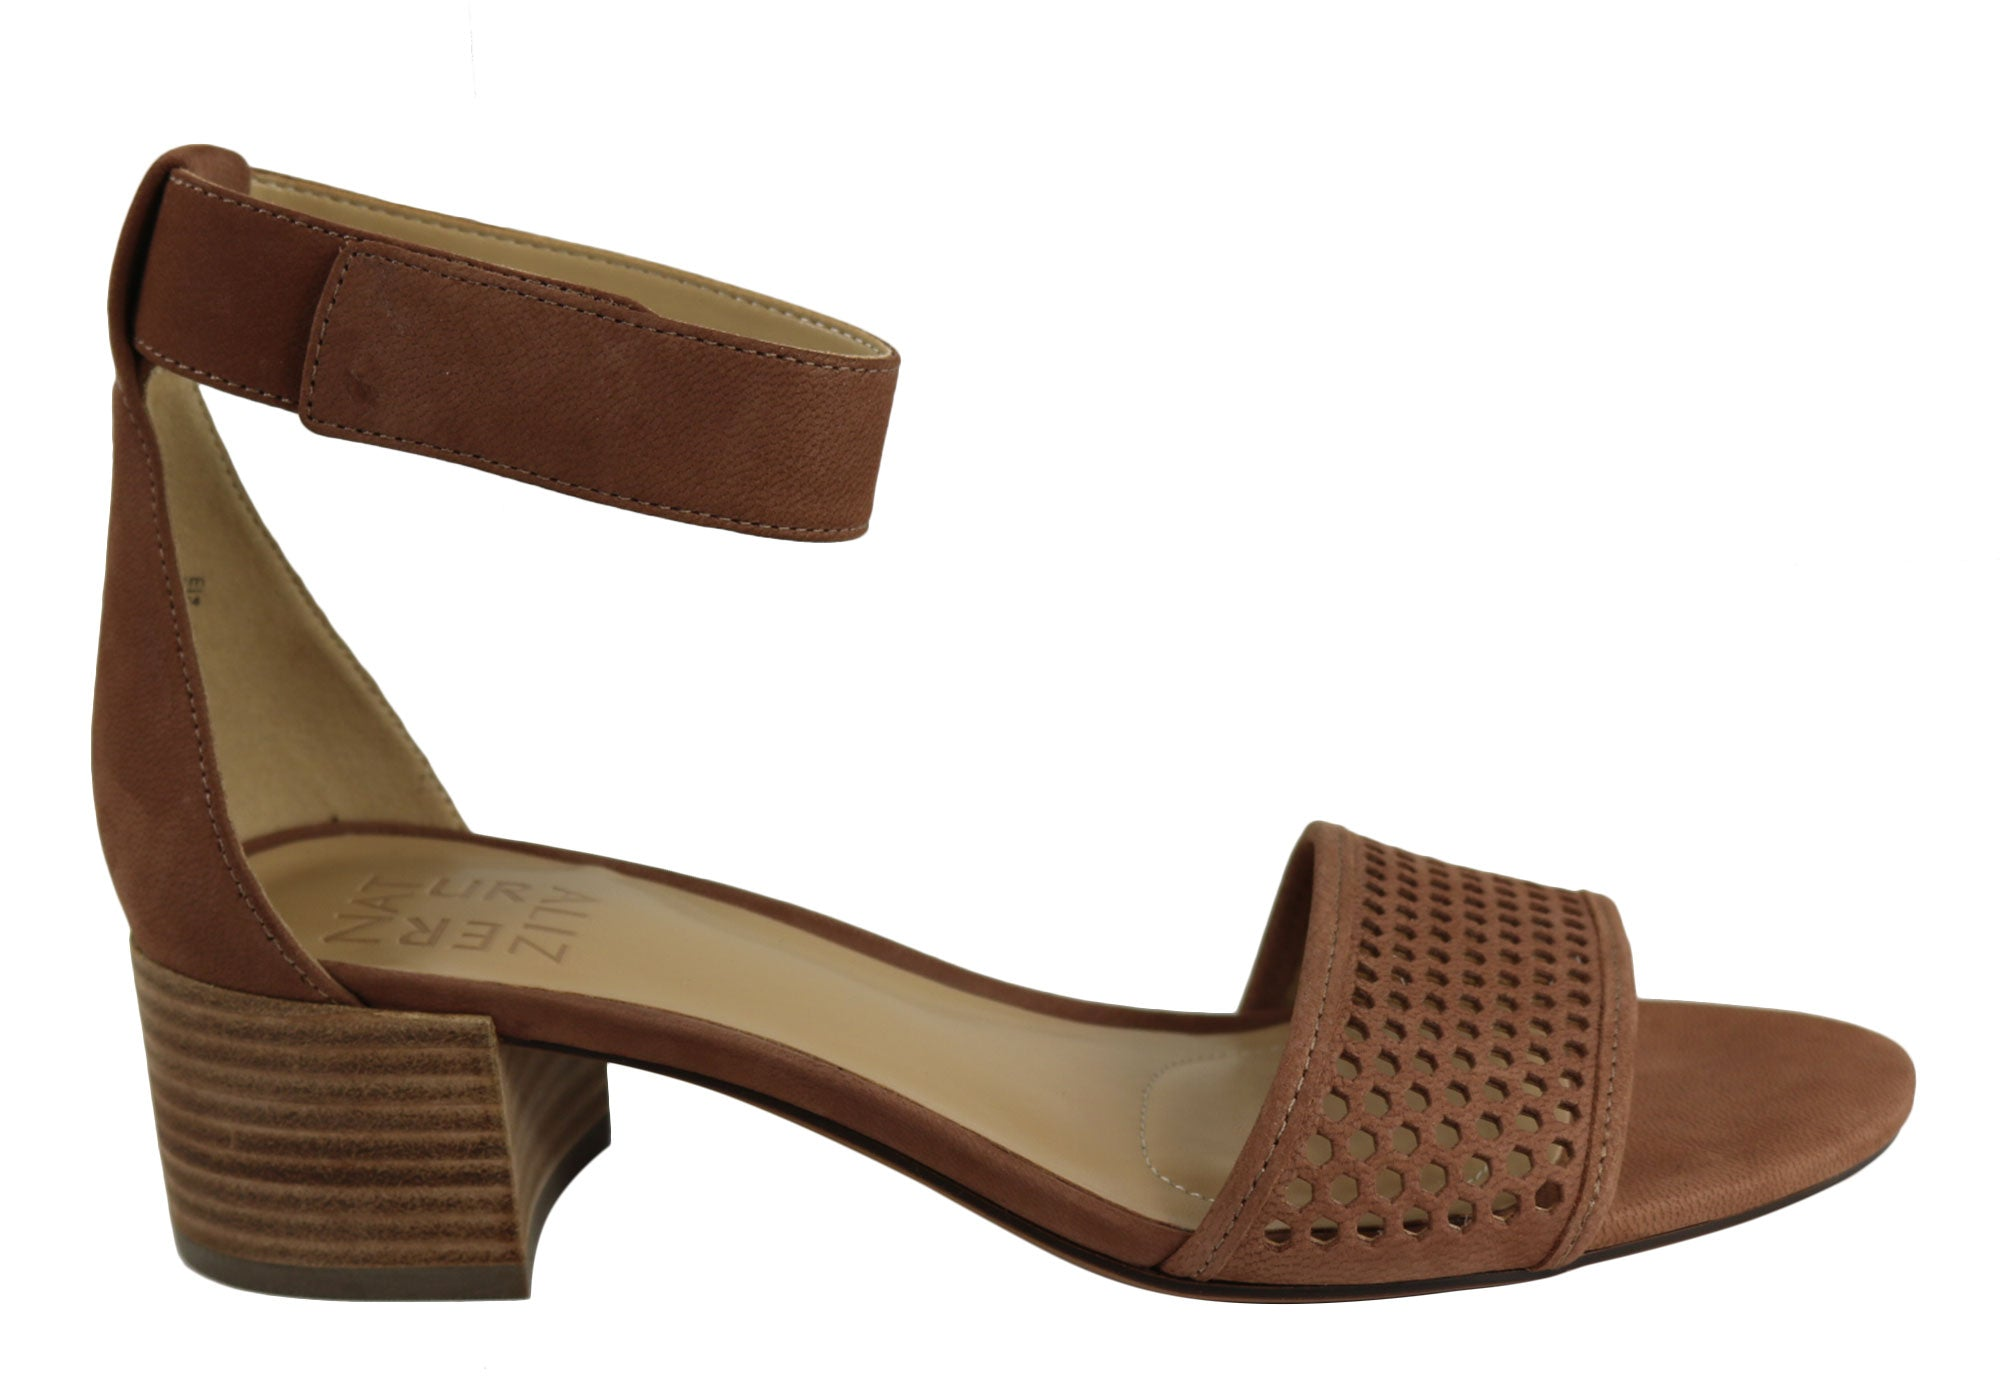 7acaf84fdf85 Home Naturalizer Faith Womens Comfort Wide Fit Leather Low Heel Sandals.  Tan ...